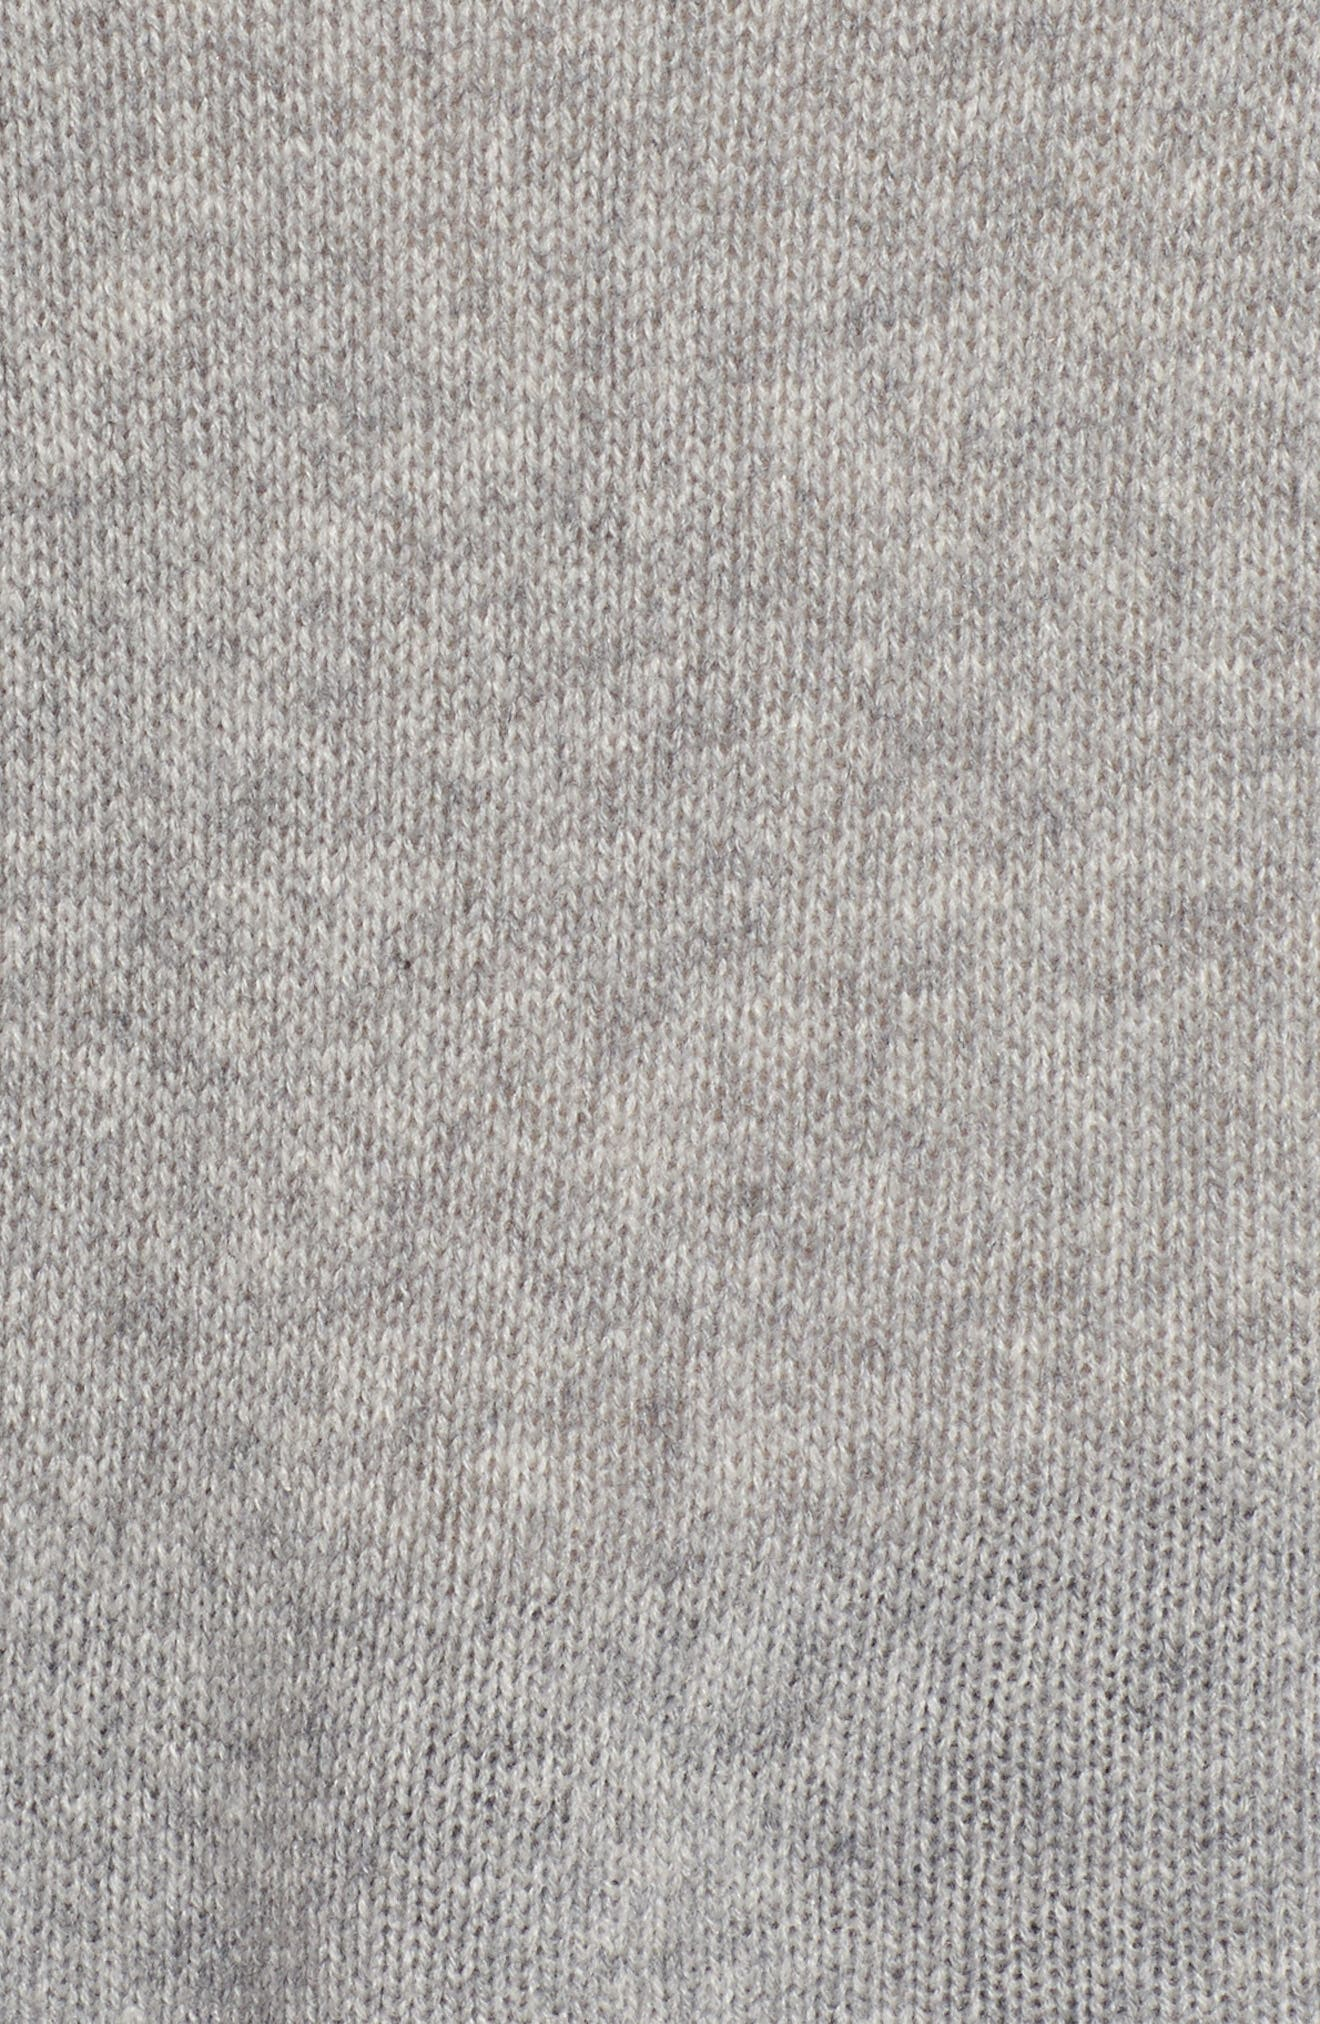 Baly Bis Cashmere Sweater,                             Alternate thumbnail 5, color,                             Gris